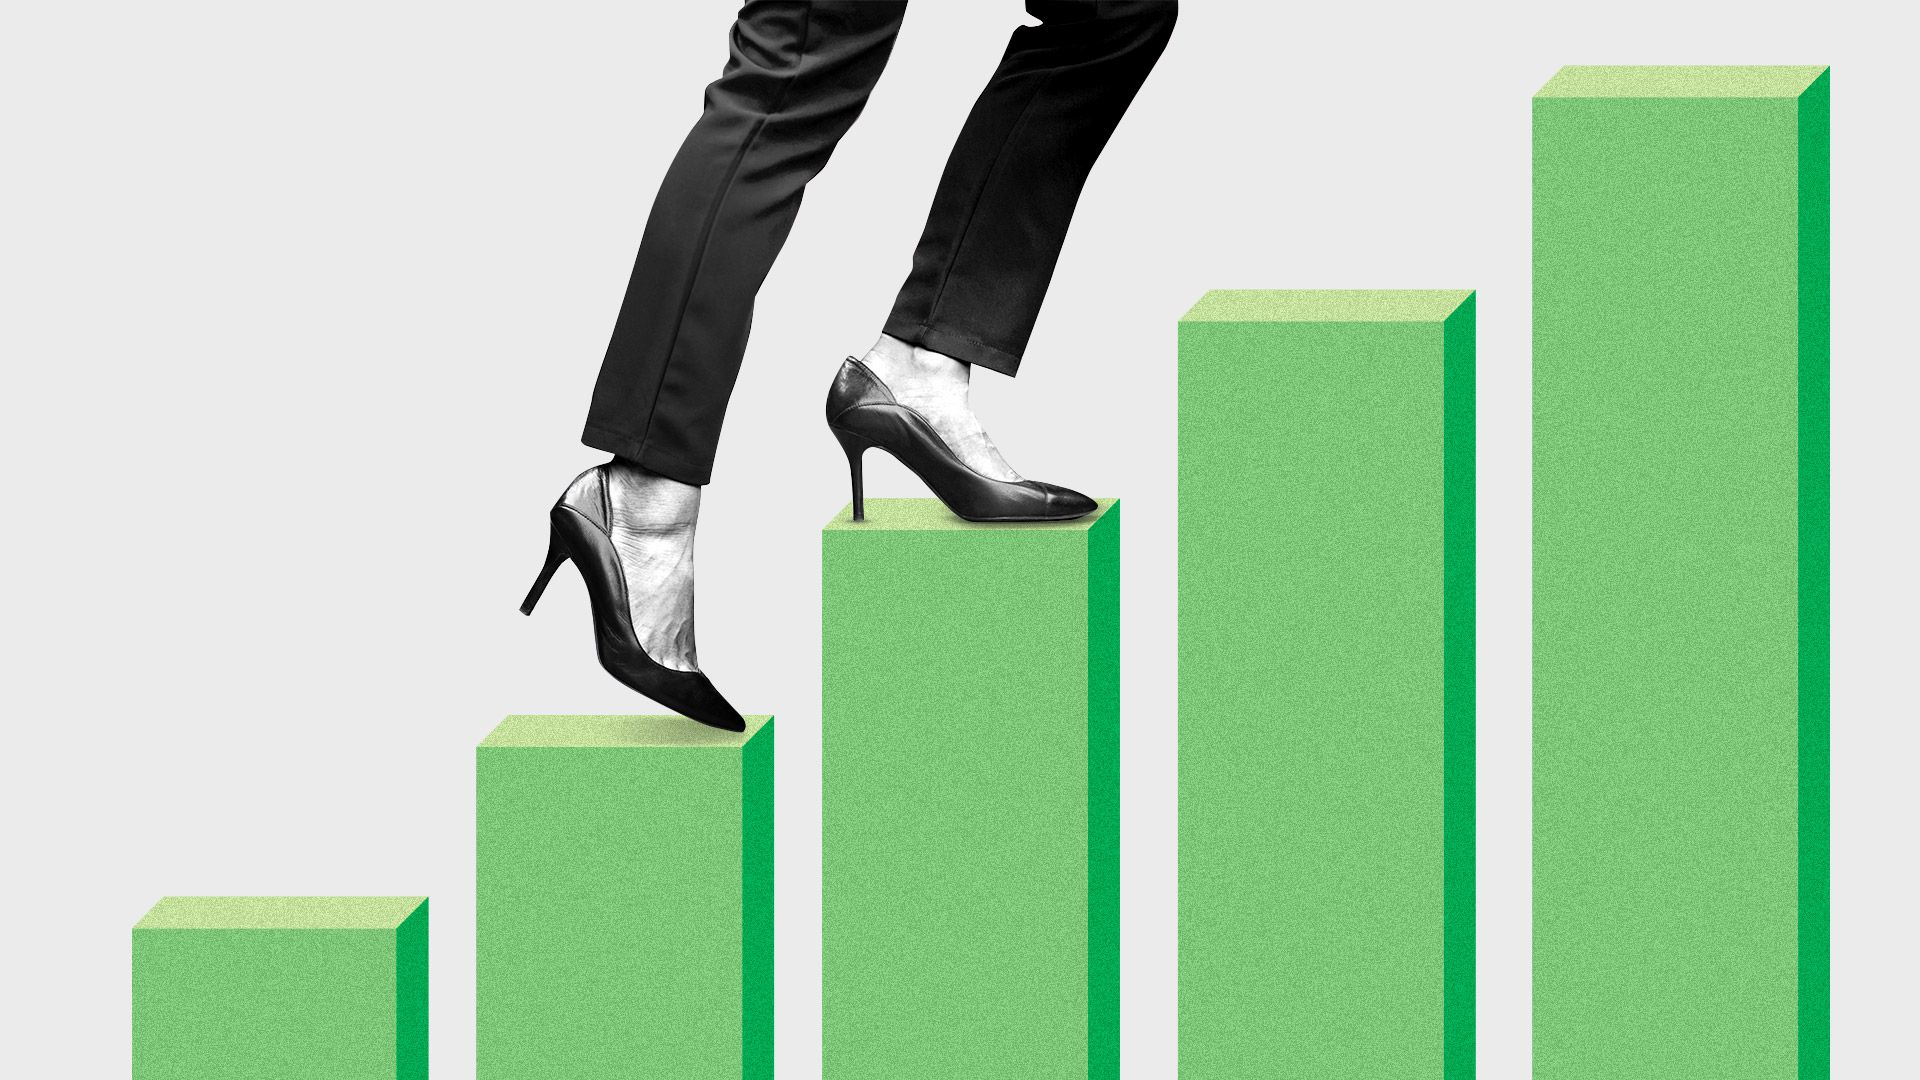 Illustration of a pair of heels walking up a market bar chart that resembles stairs.